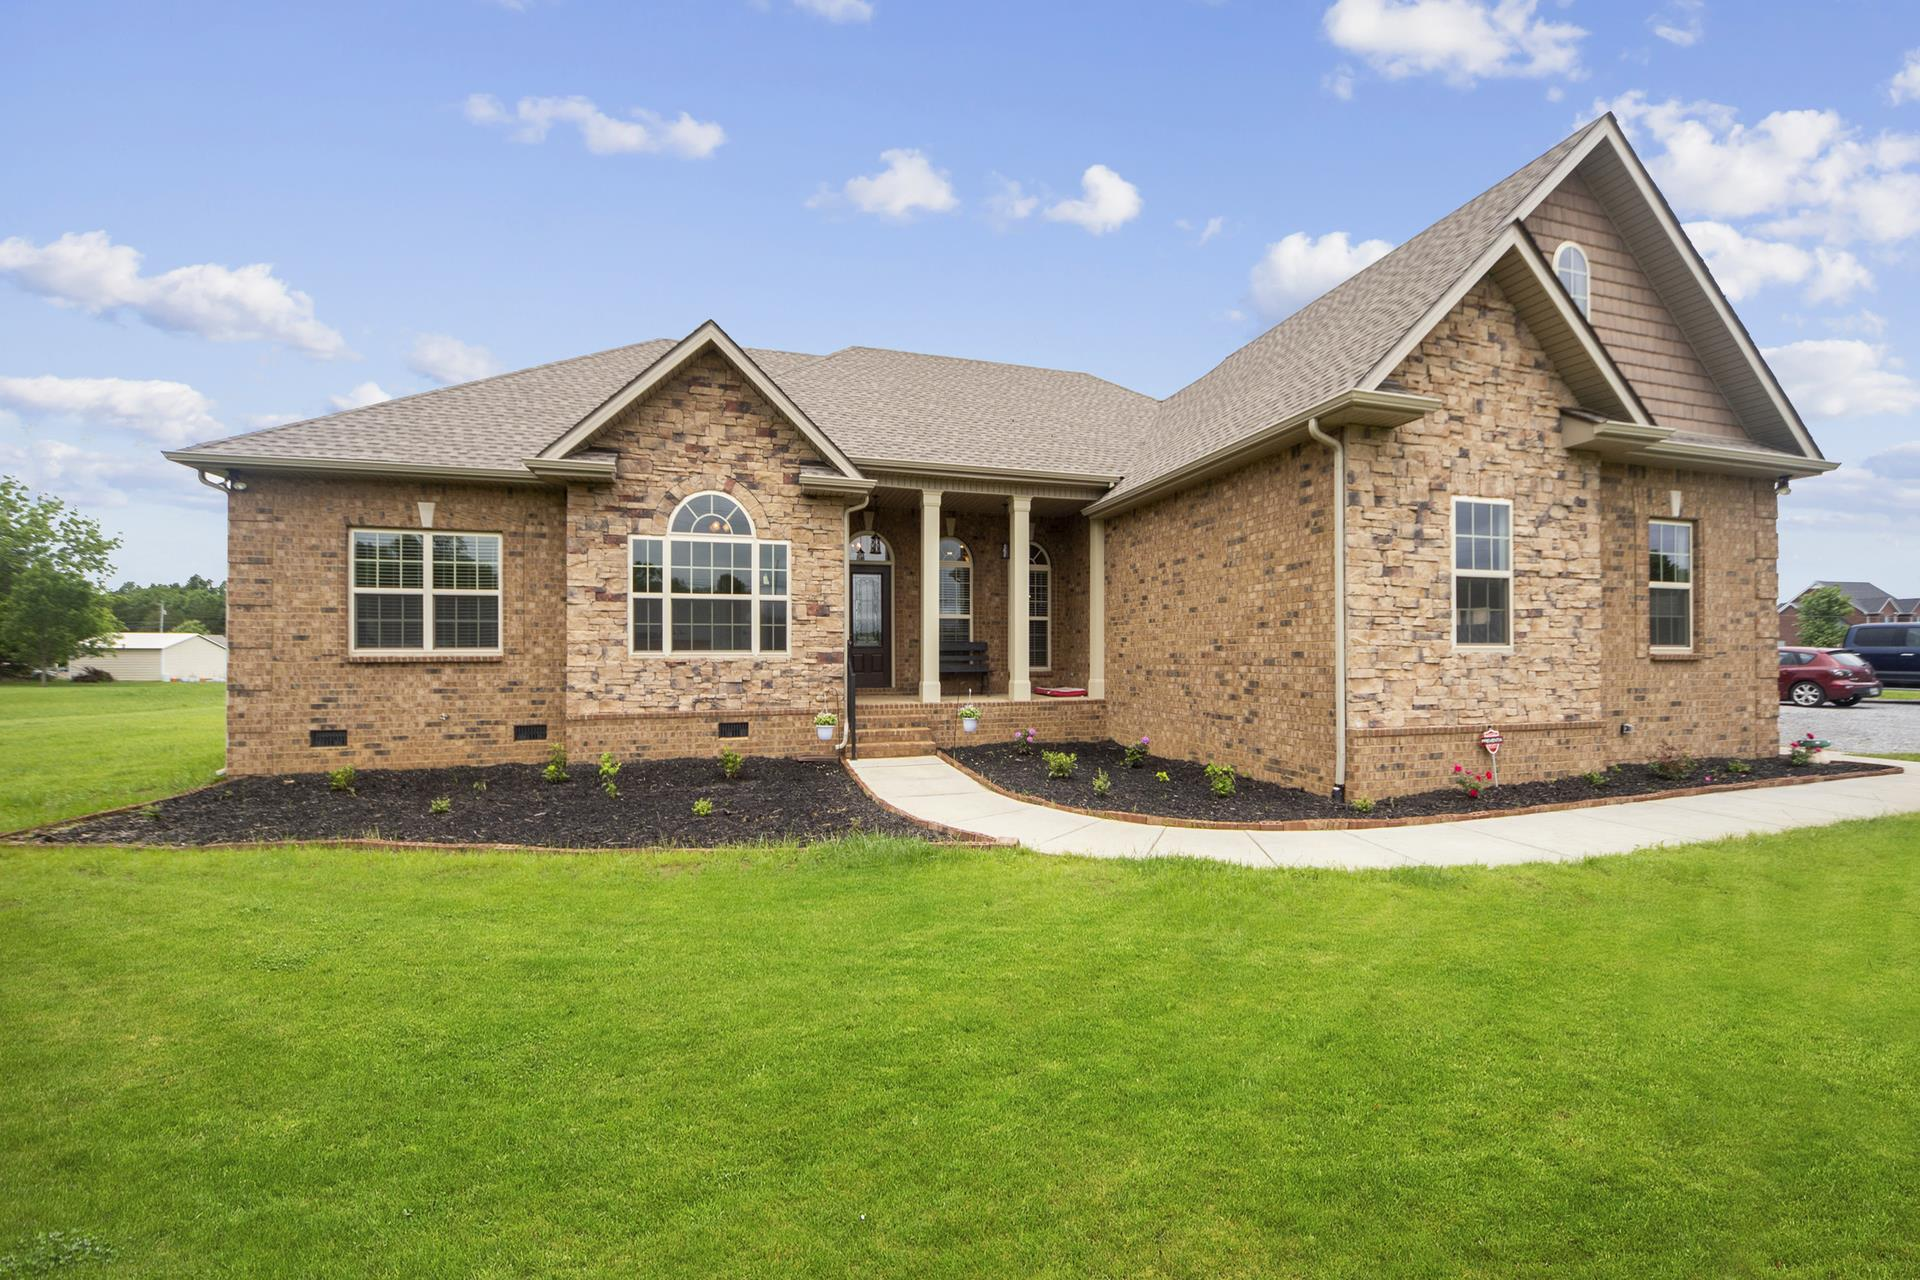 2600 Midland Fosterville Rd, Bell Buckle, TN 37020 - Bell Buckle, TN real estate listing